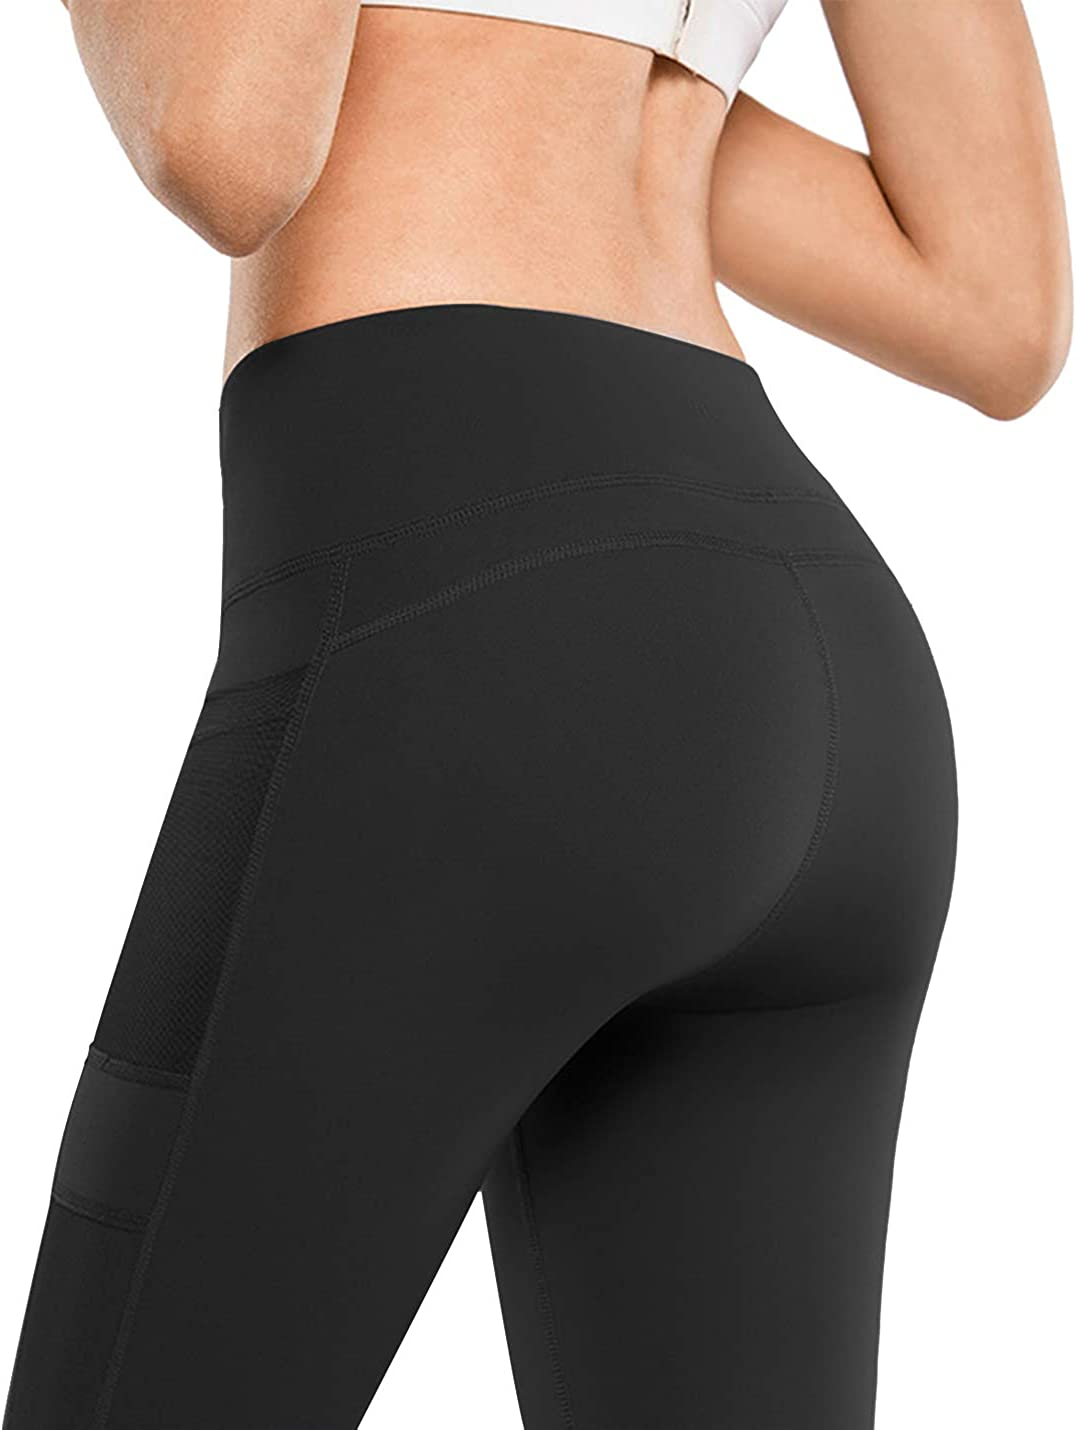 Tummy Control Lynfun High Waist Yoga Pants with Pockets Workout Pants for Women 4 Way Stretch Yoga Leggings with Pockets/…